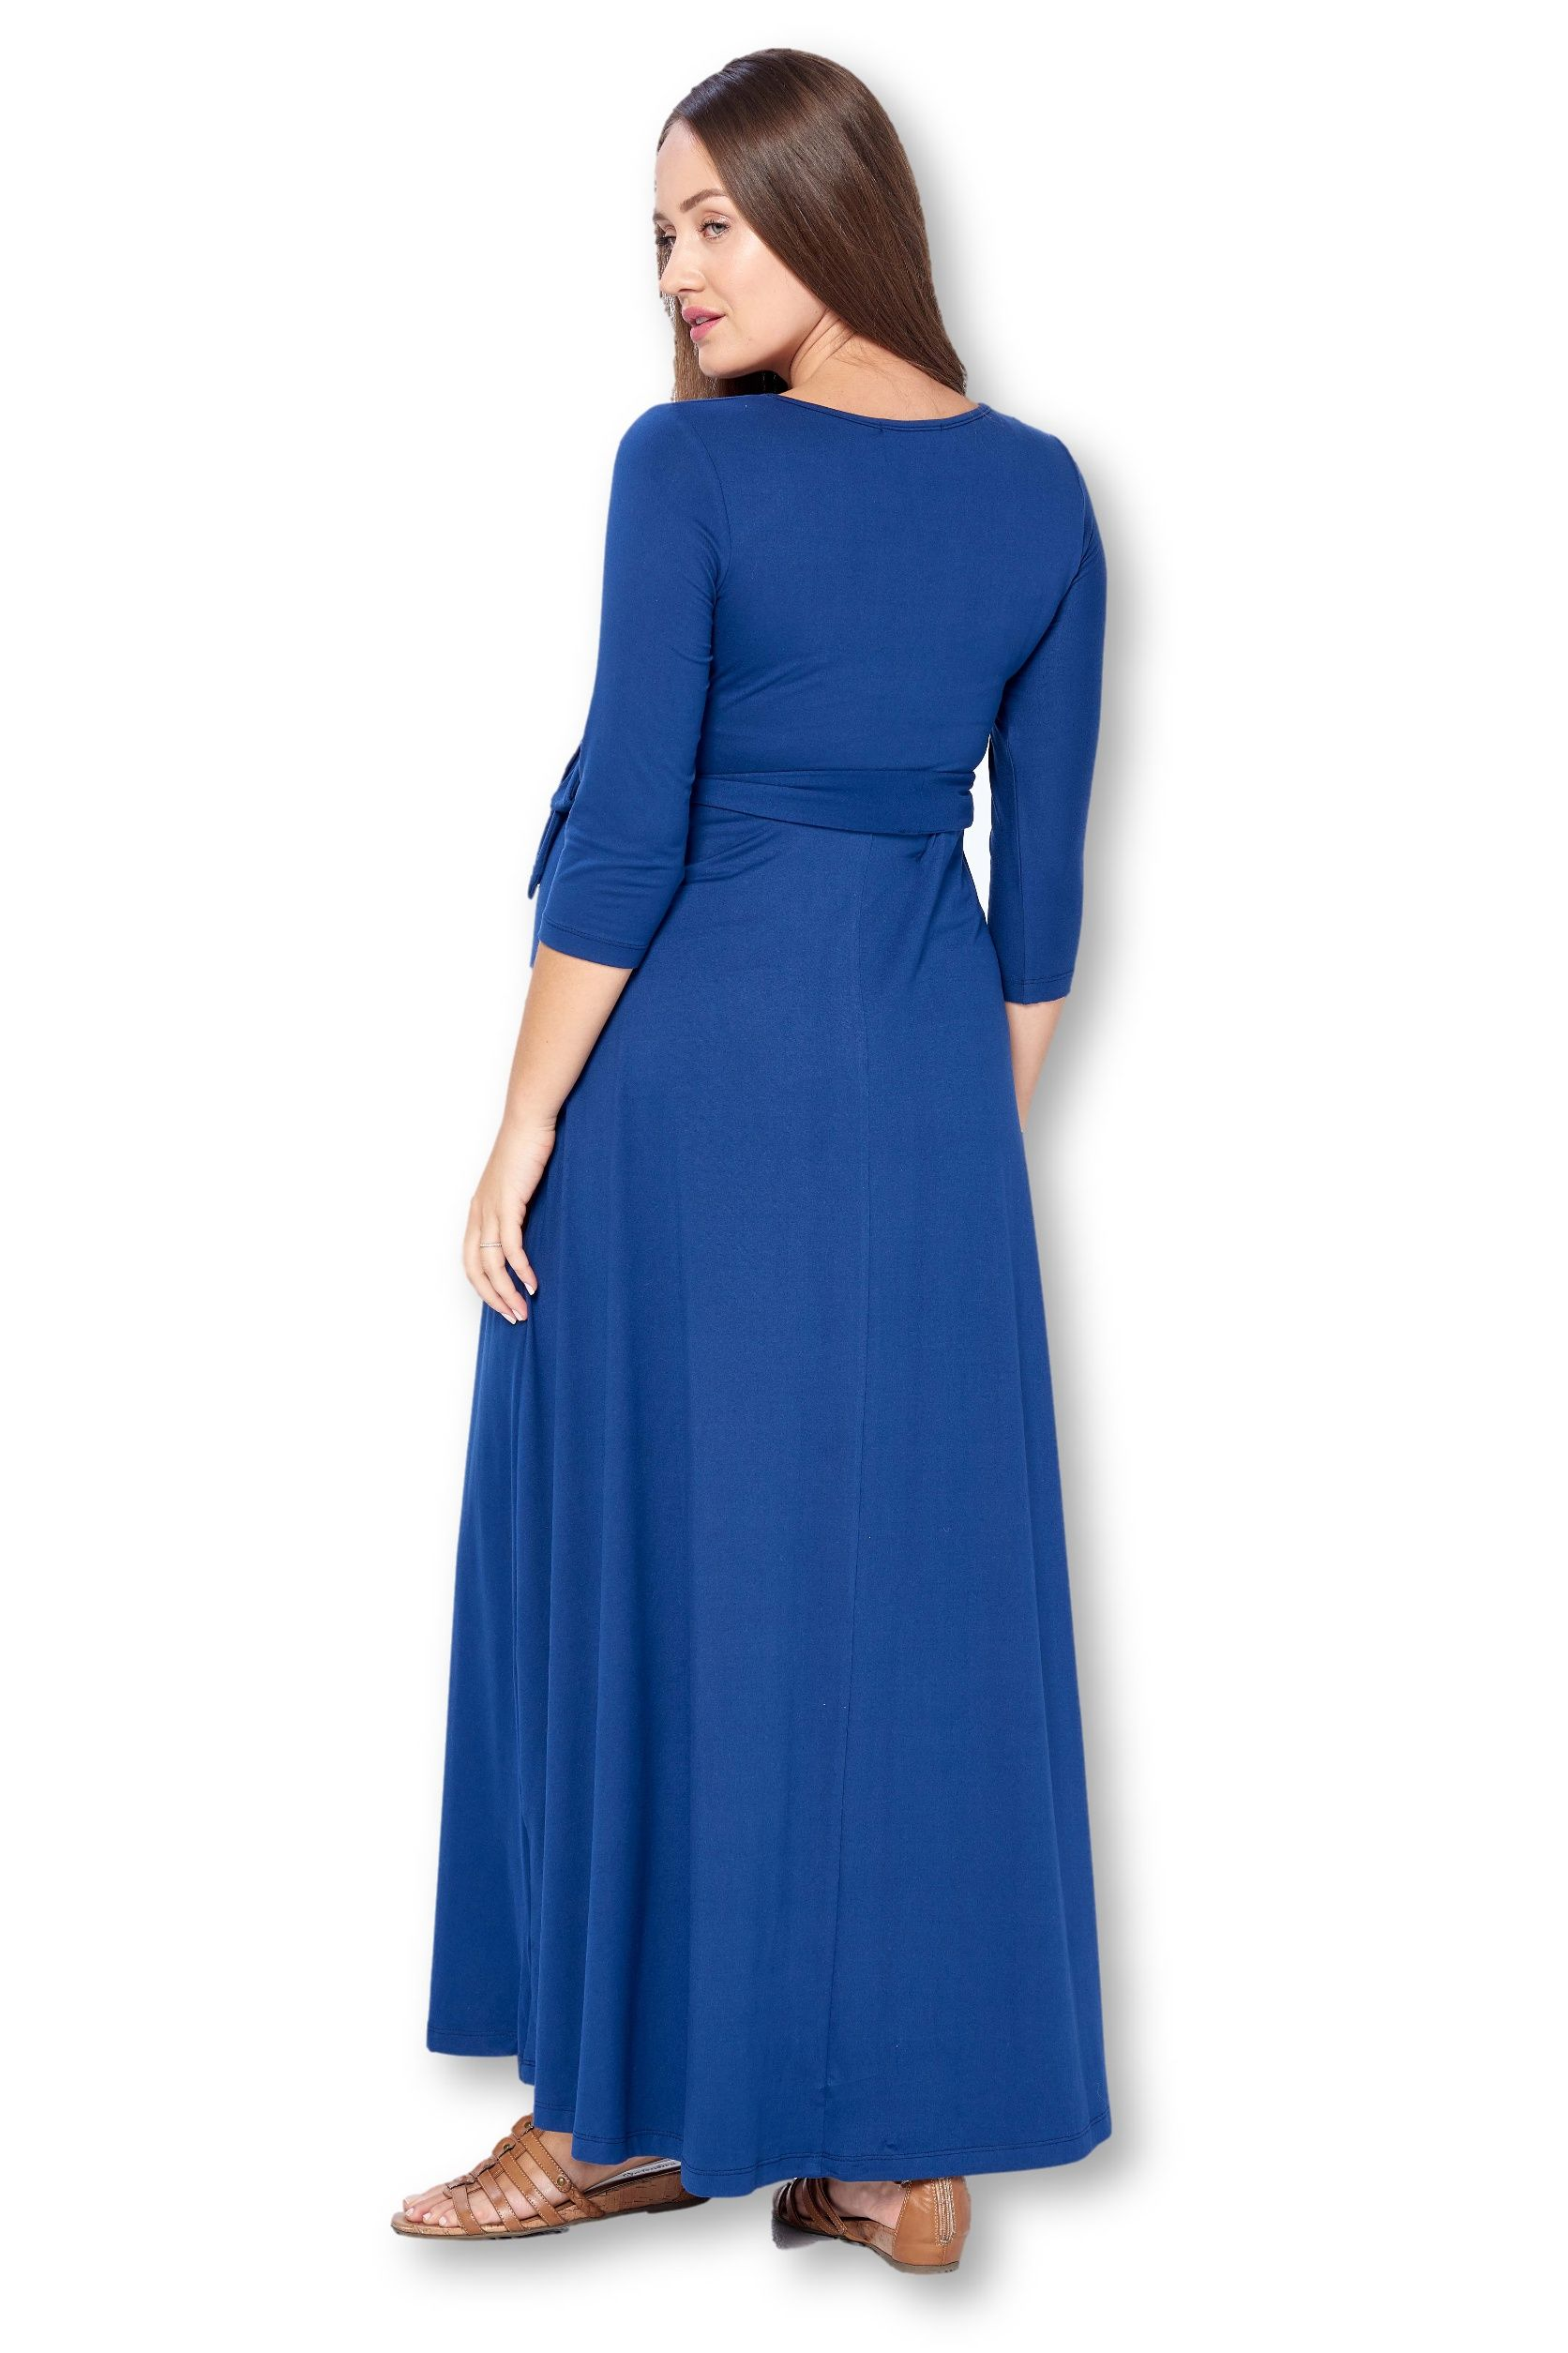 Star Motherhood Women S 3 4 Sleeve Wrapped Ruched Maternity Dress S 3xl Made In Usa Walmart Com Maxi Wrap Dress Womens Dresses Maxi Dress [ 2509 x 1672 Pixel ]